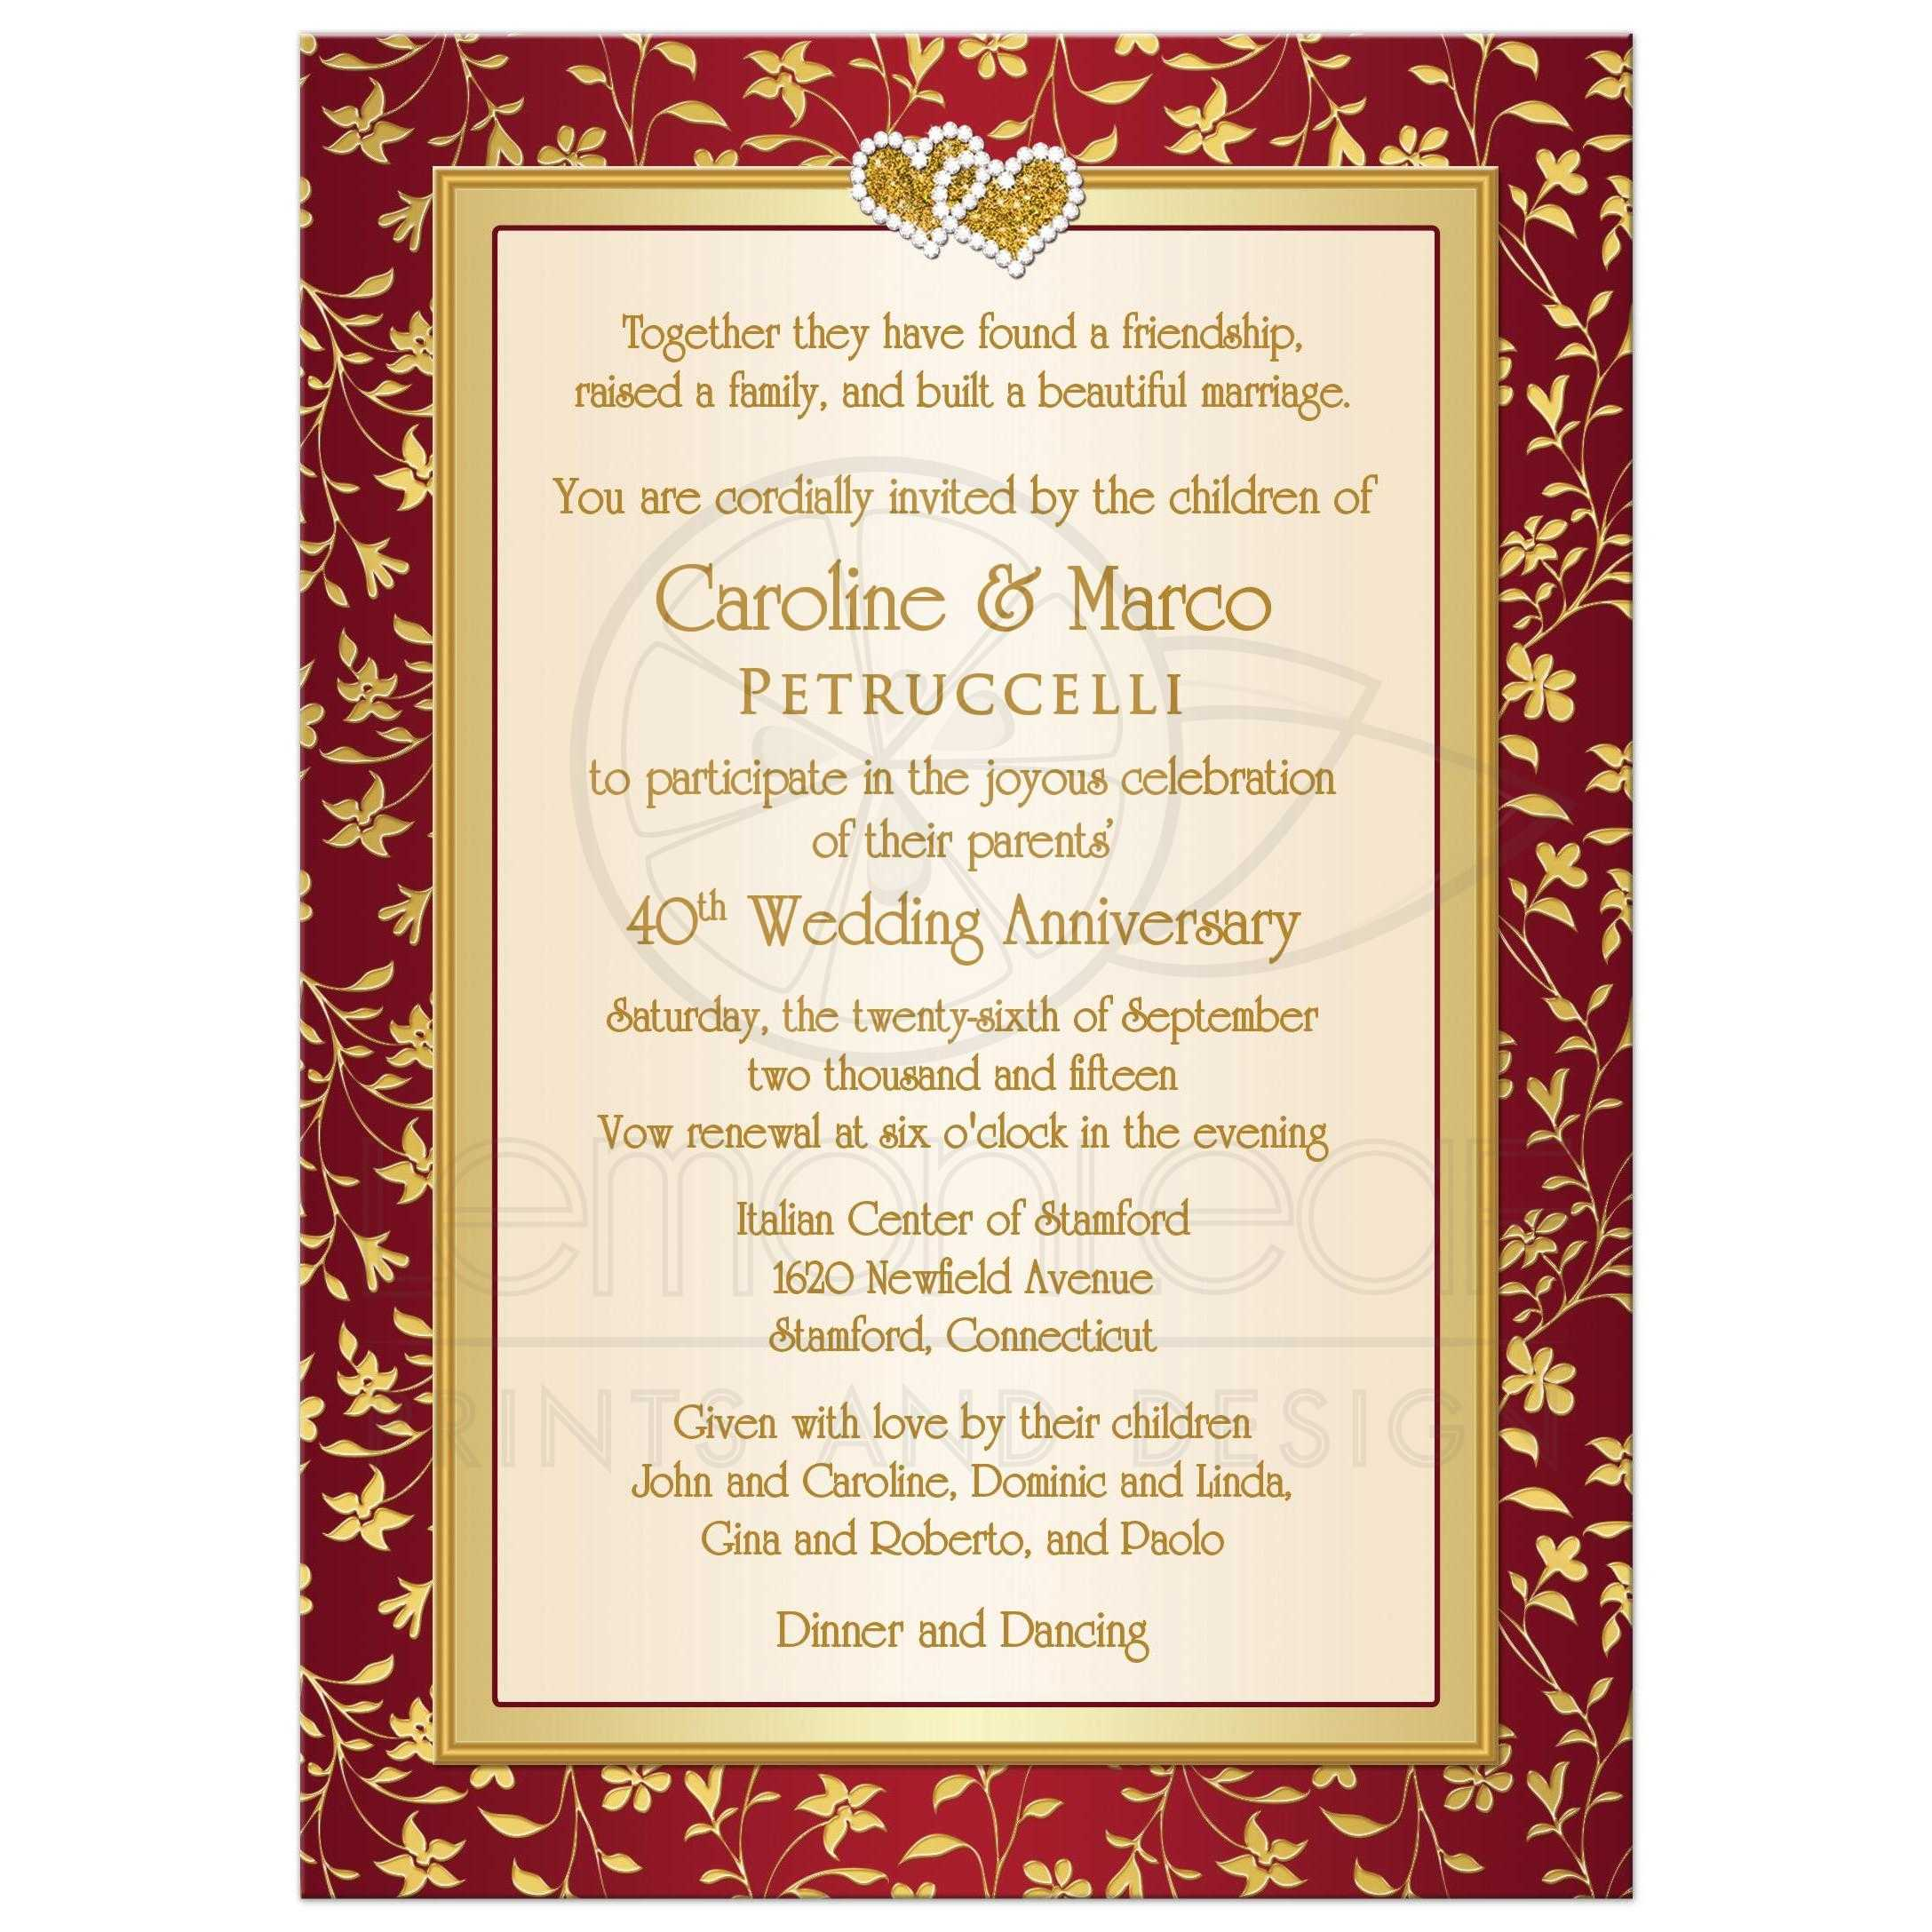 Best 40th Wedding Anniversary Invitation In Red, Ivory, And Gold Floral ...